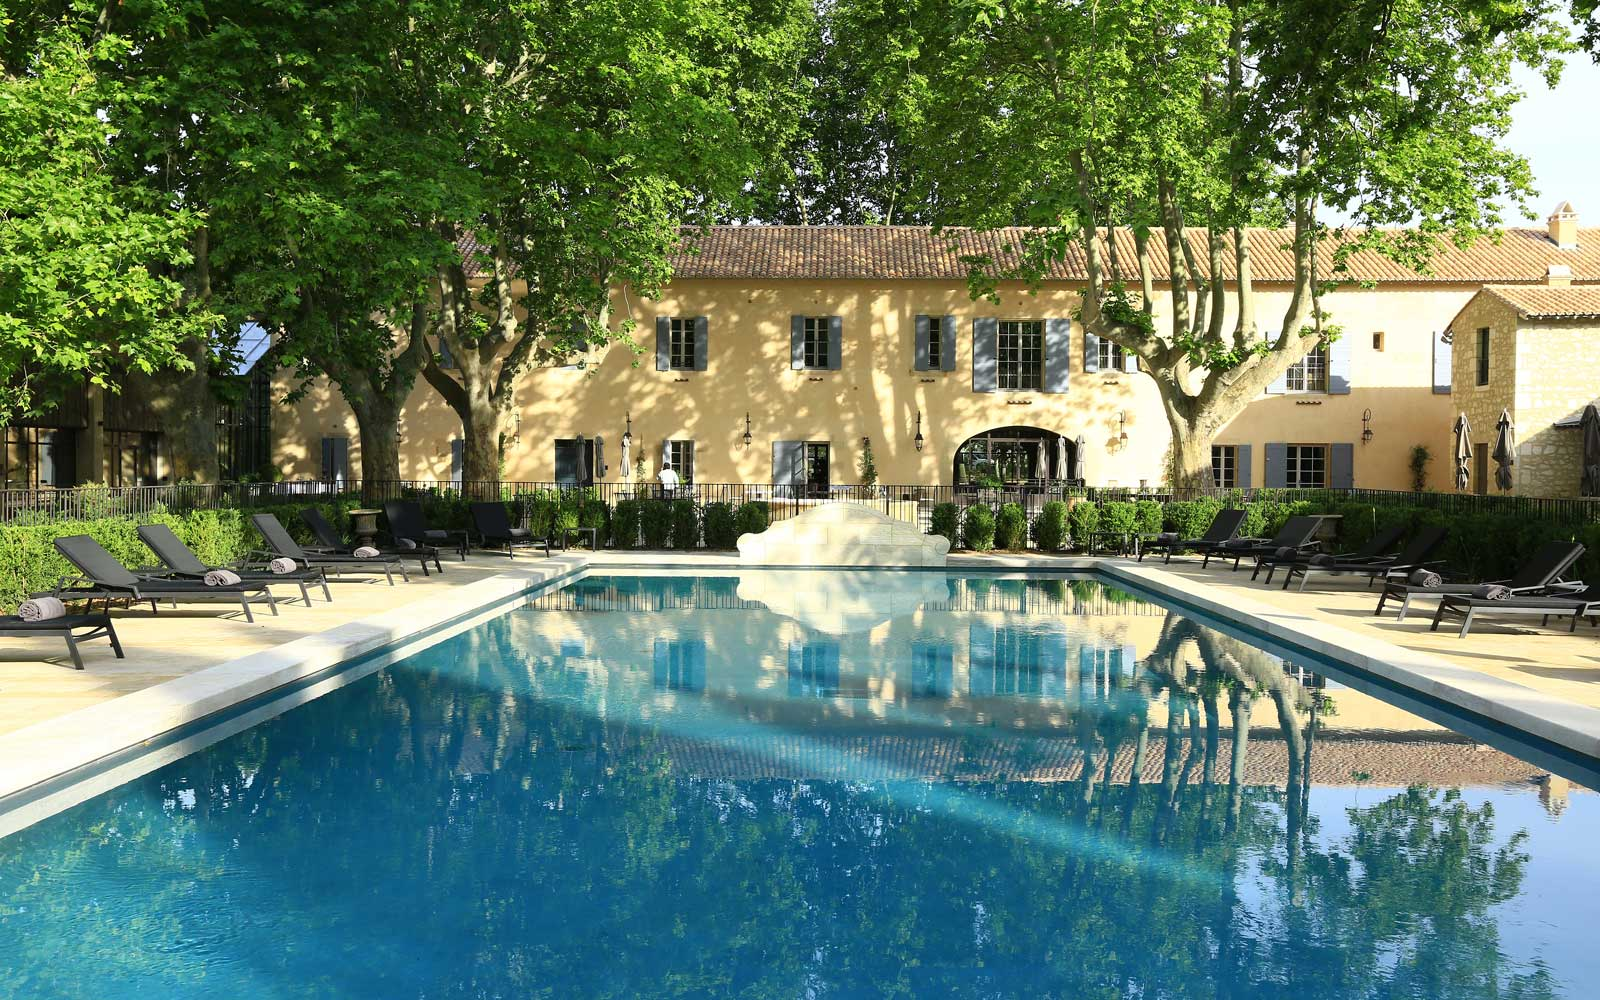 Save 45% on Stays at Domaine de Manville in Provence